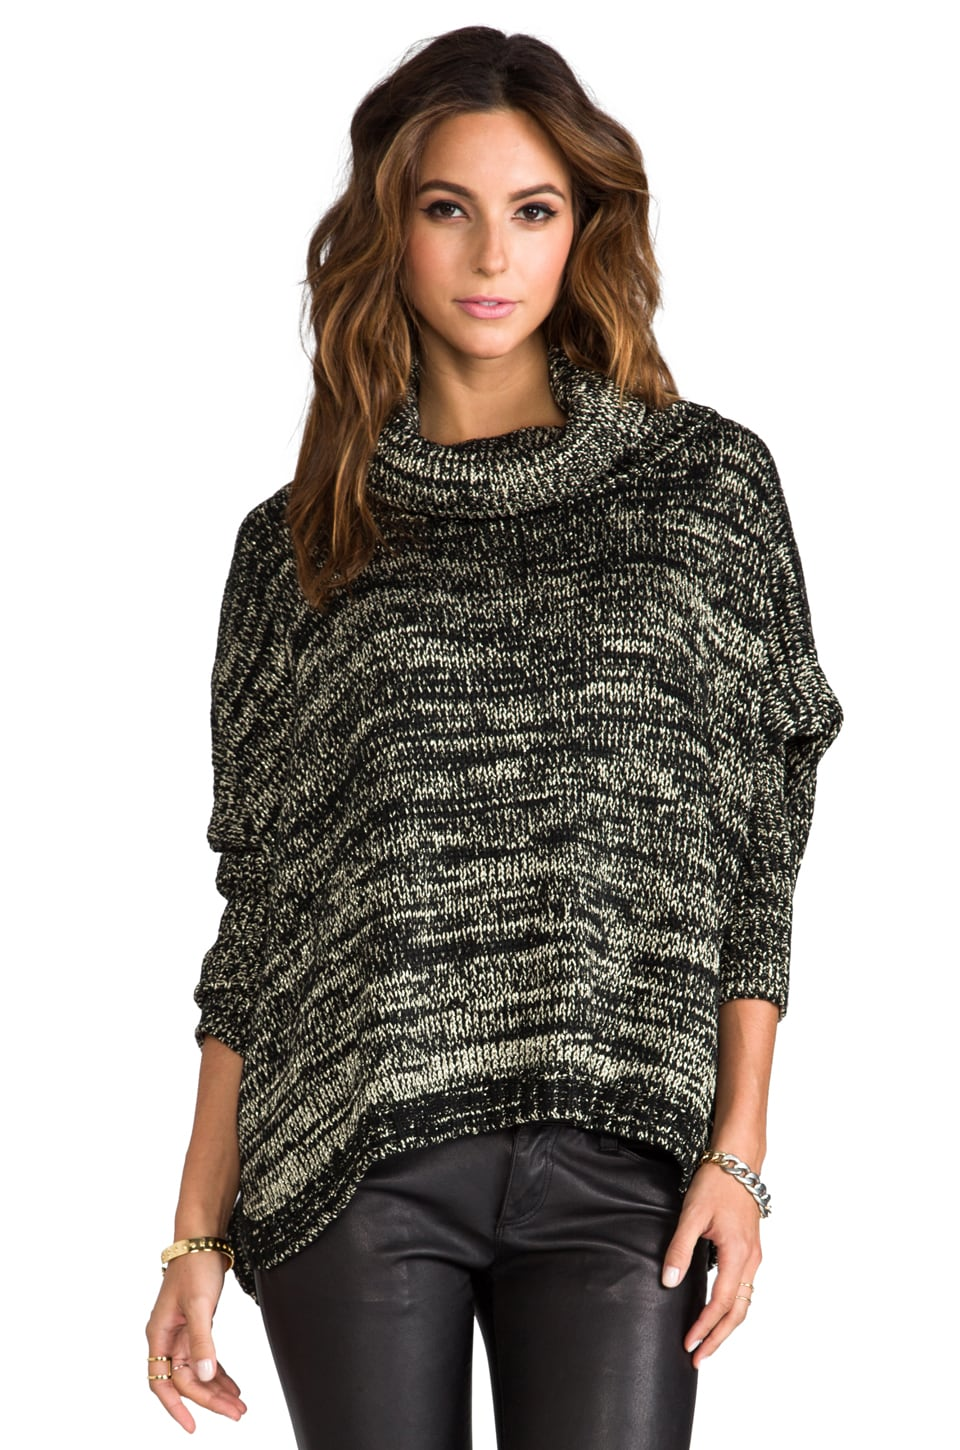 Generation Love Brunch Metal Poncho Sweater in Gold